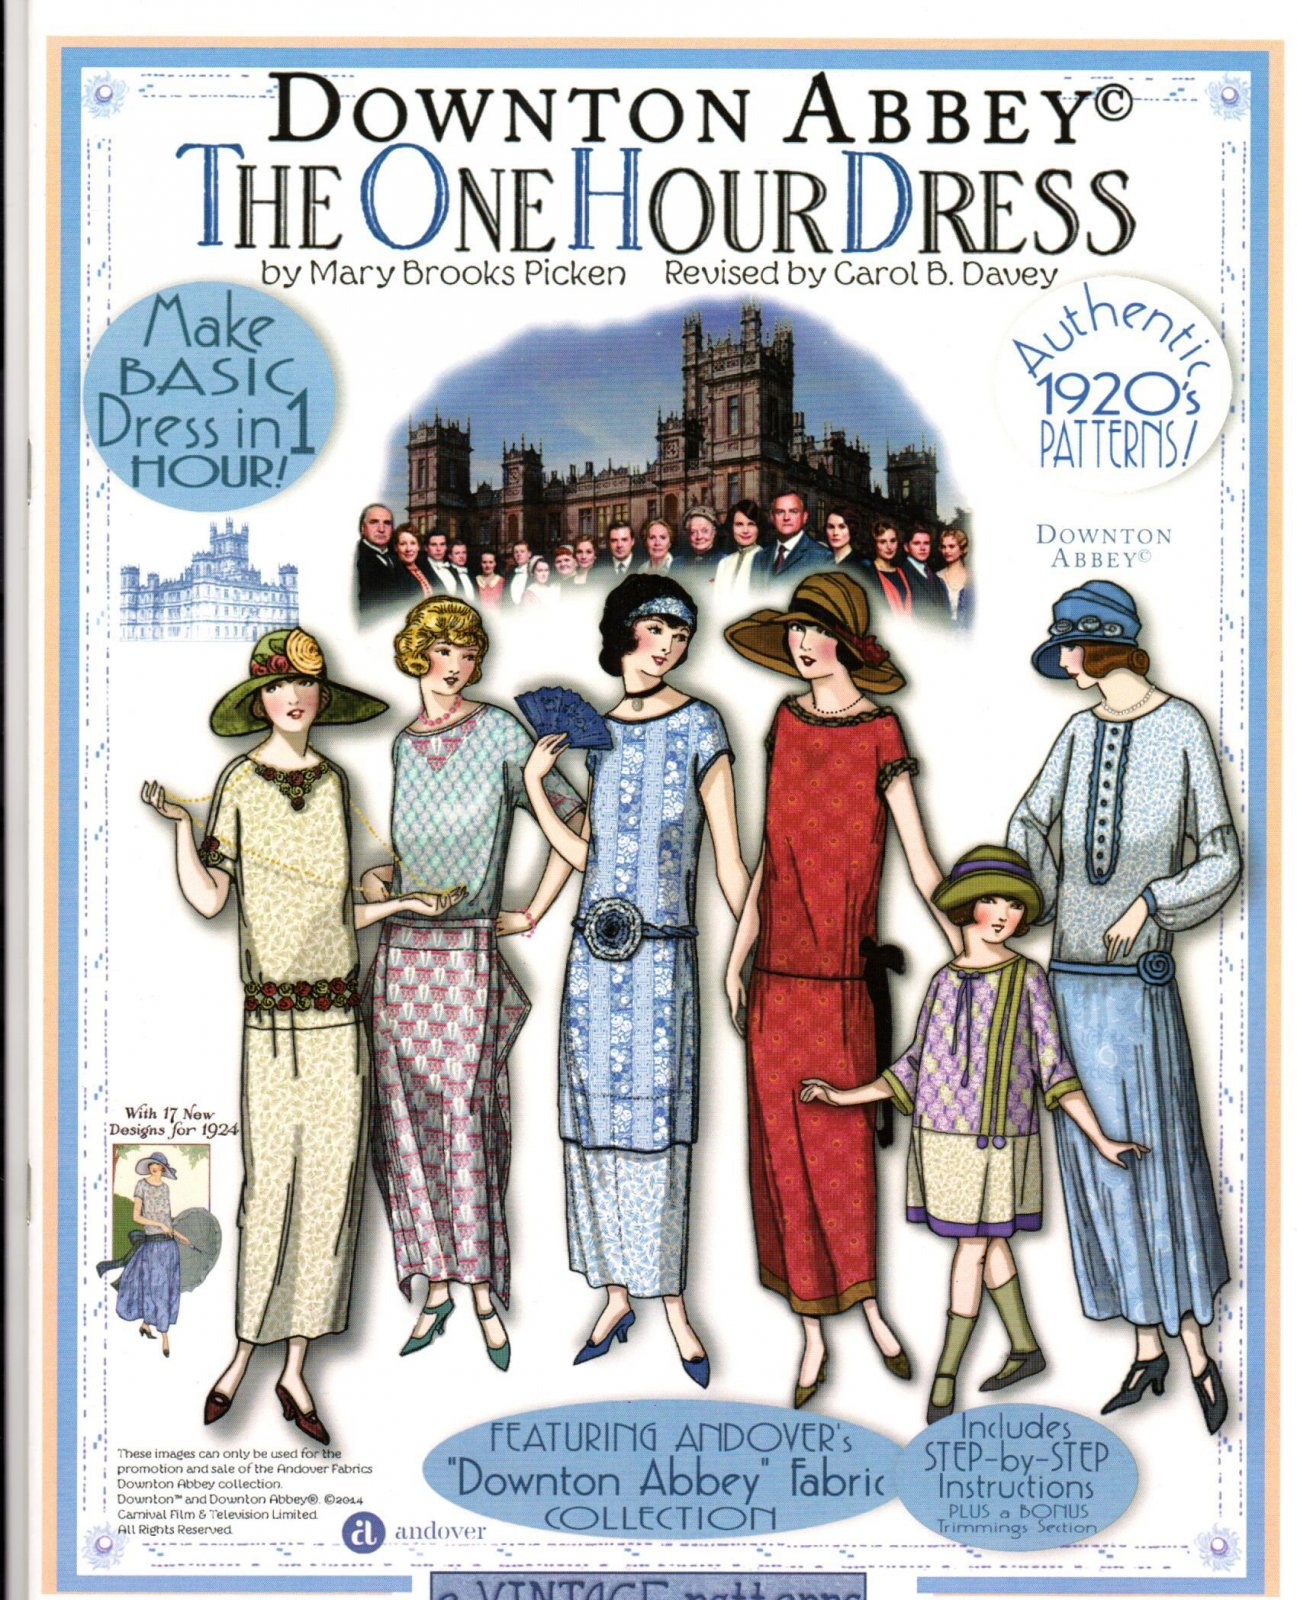 The One Hour Dress <br> The Downton Abbey Collection